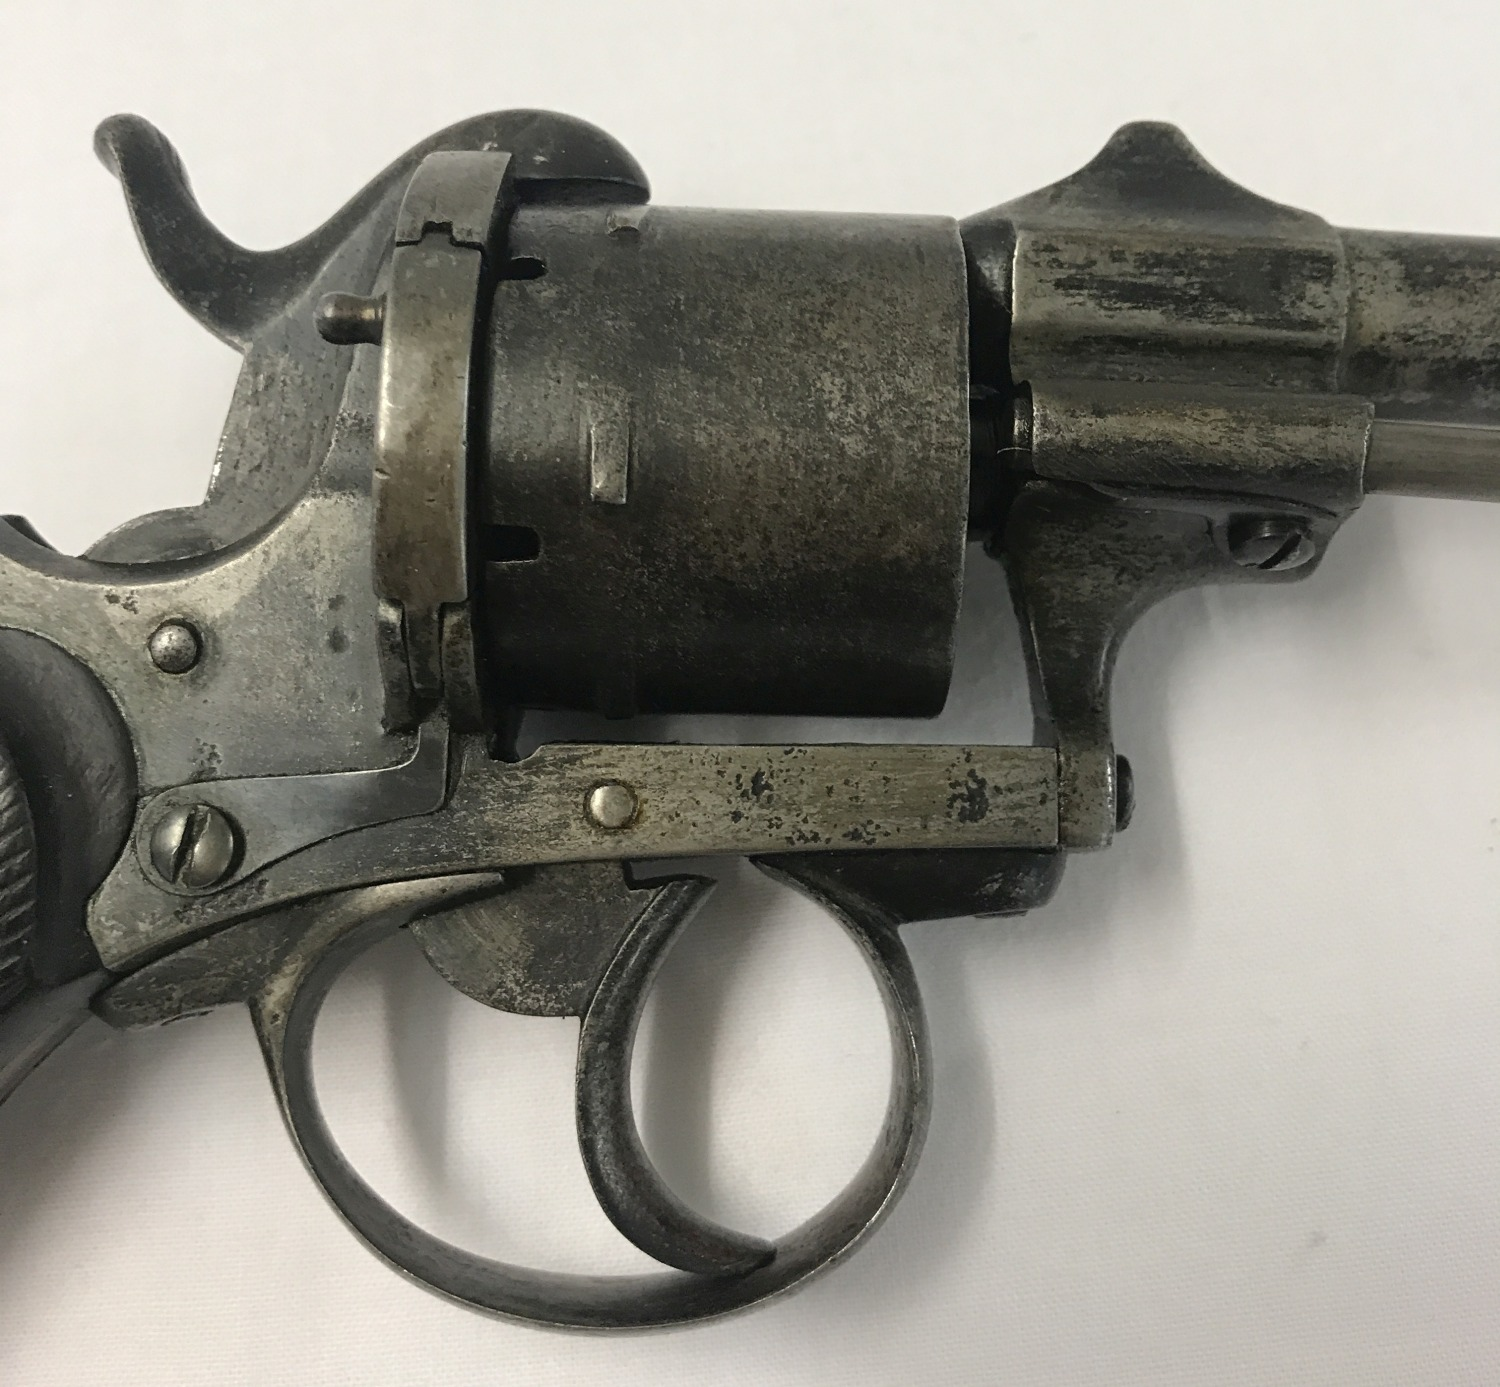 An antique Belgium Pinfire 9mm revolver c 1865. - Image 3 of 5